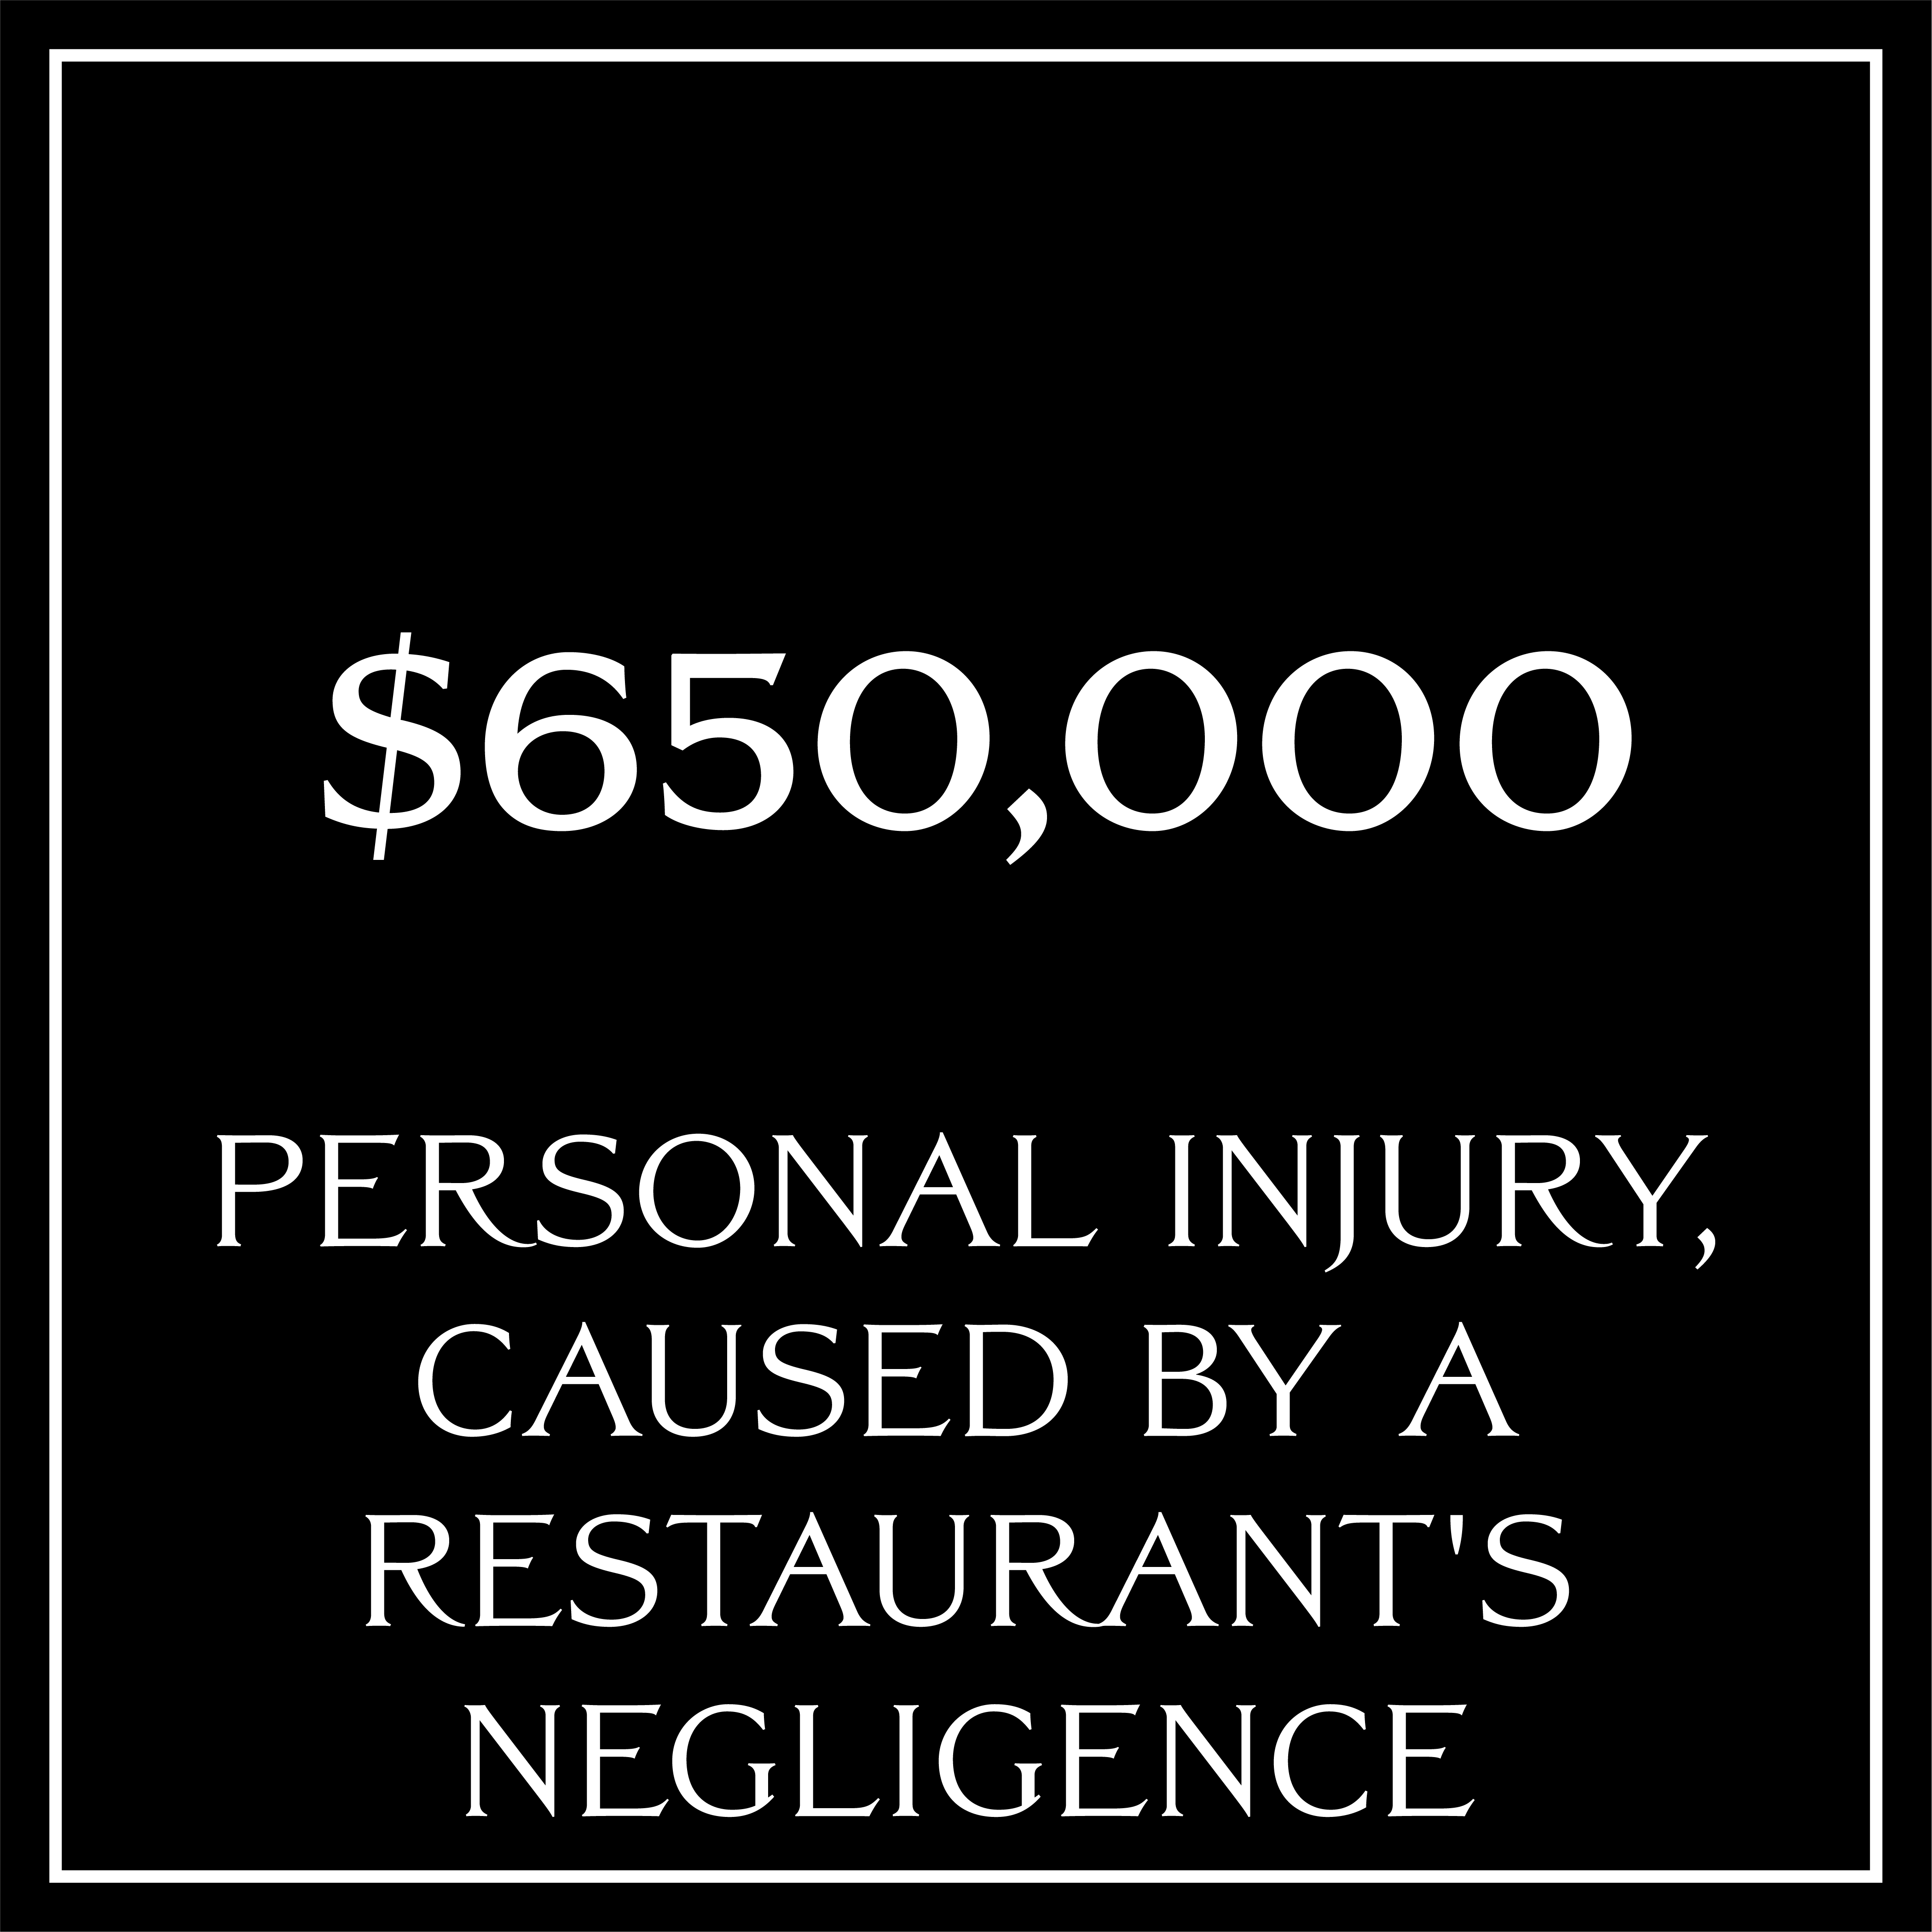 Personal Injury Caused by a restaurant's negligence